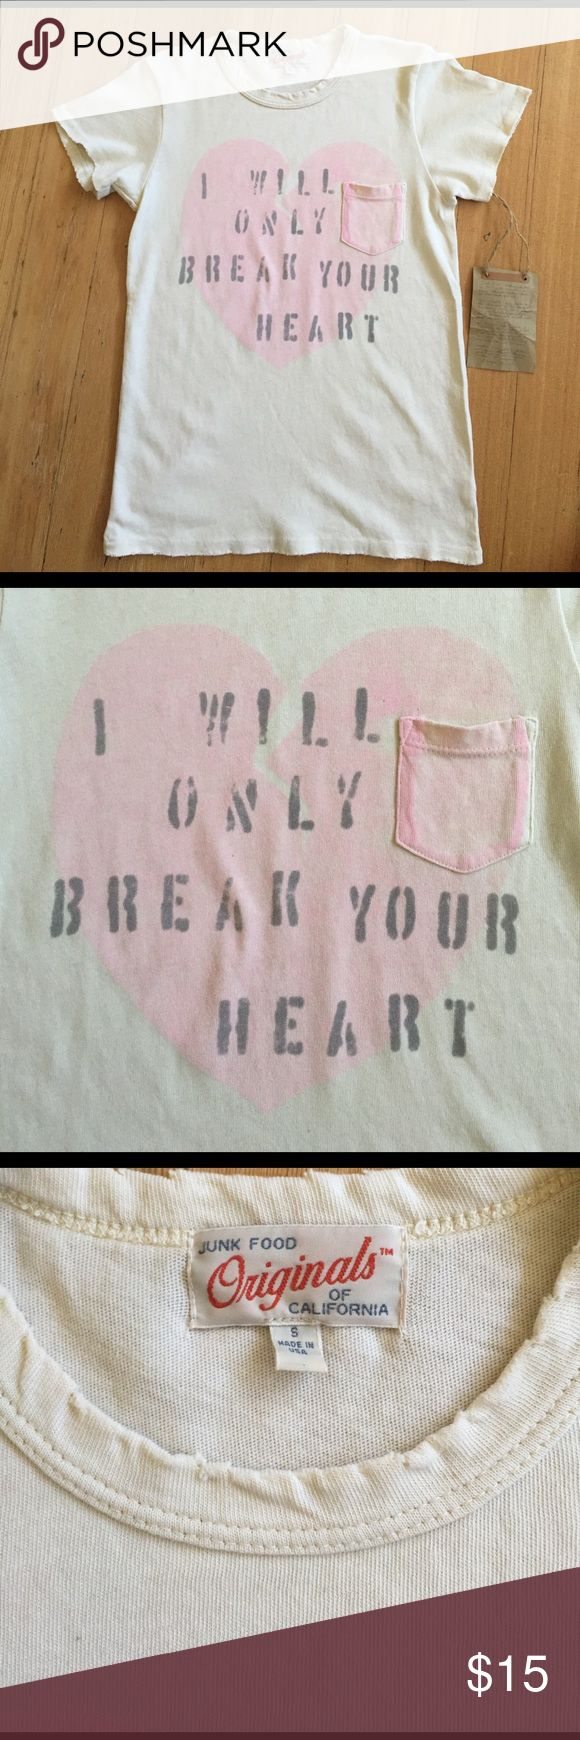 "Junk Food Break Your Heart Tee in Almond Junk Food tee says, ""I will only break your heart"" on an off white pocket tee.  Super soft with intentional distressing at the collar and hem.  Made in the USA. S measures 16"" wide, 22.5"" long, M is 17"" wide, 23"" long, L 18"" wide, 24"". Junk Food Clothing Tops Tees - Short Sleeve"